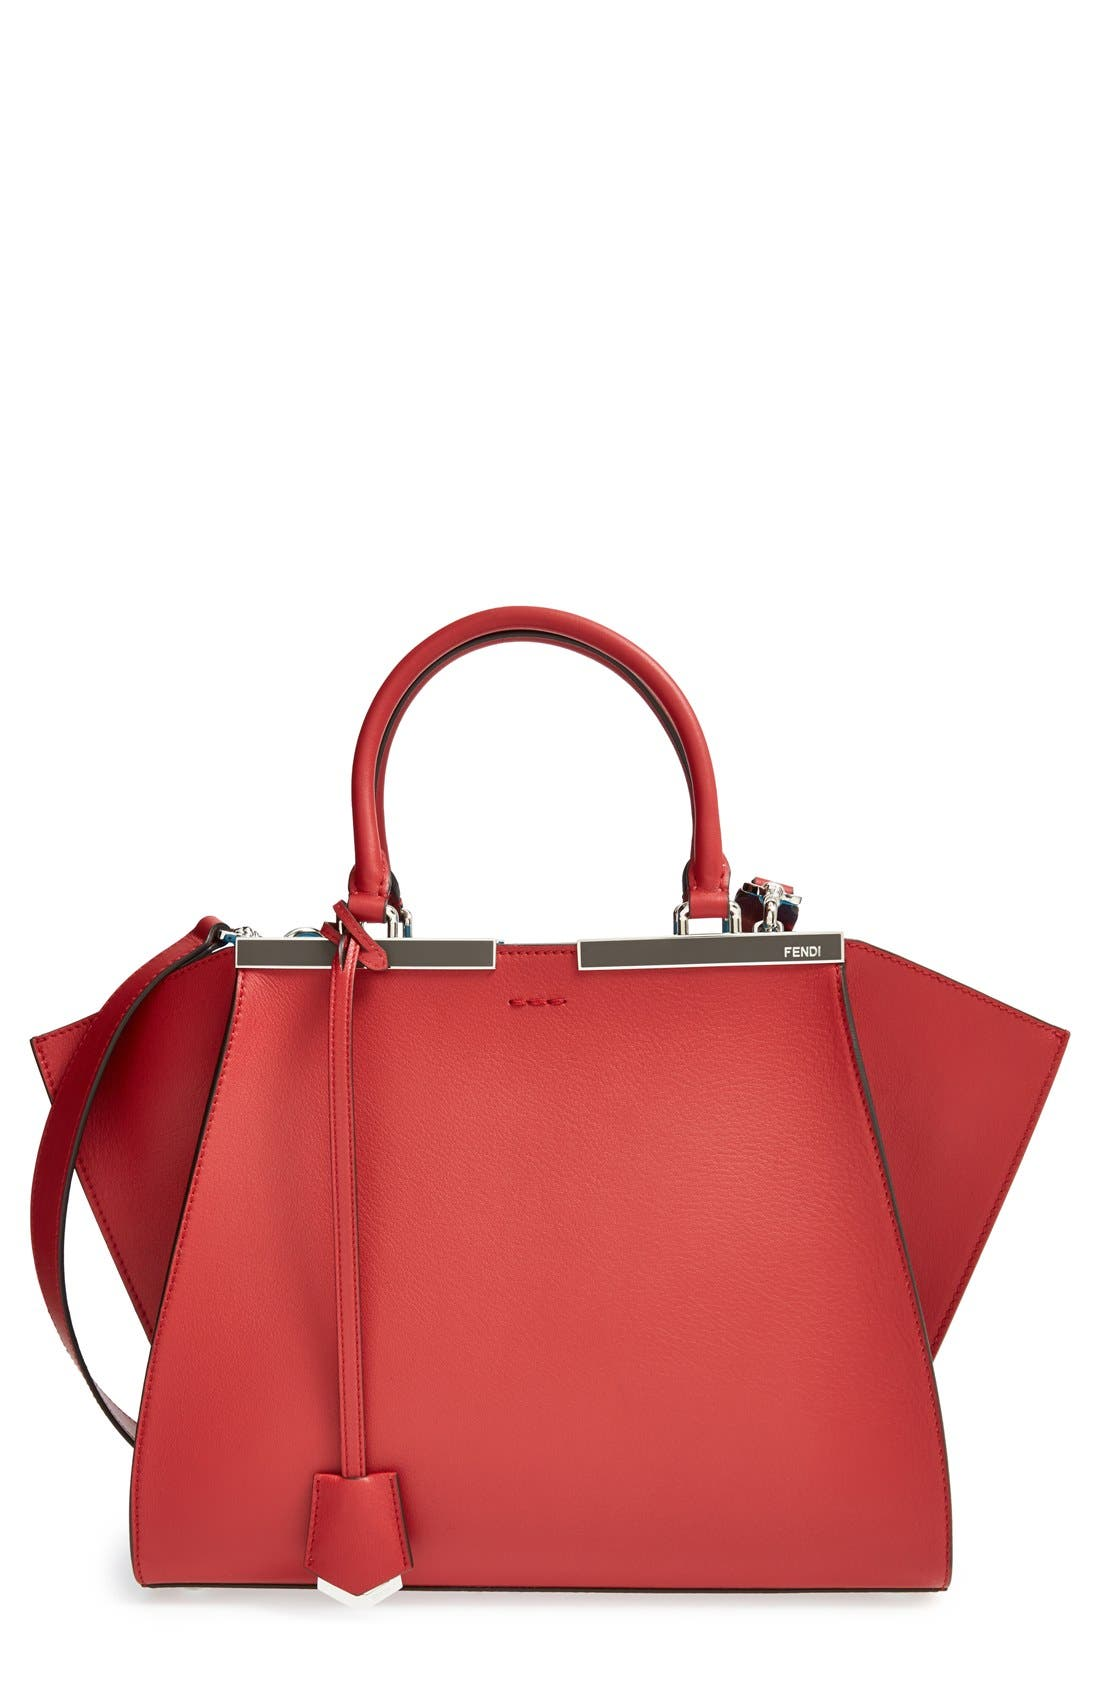 '3JOURS' LEATHER SHOPPER - RED